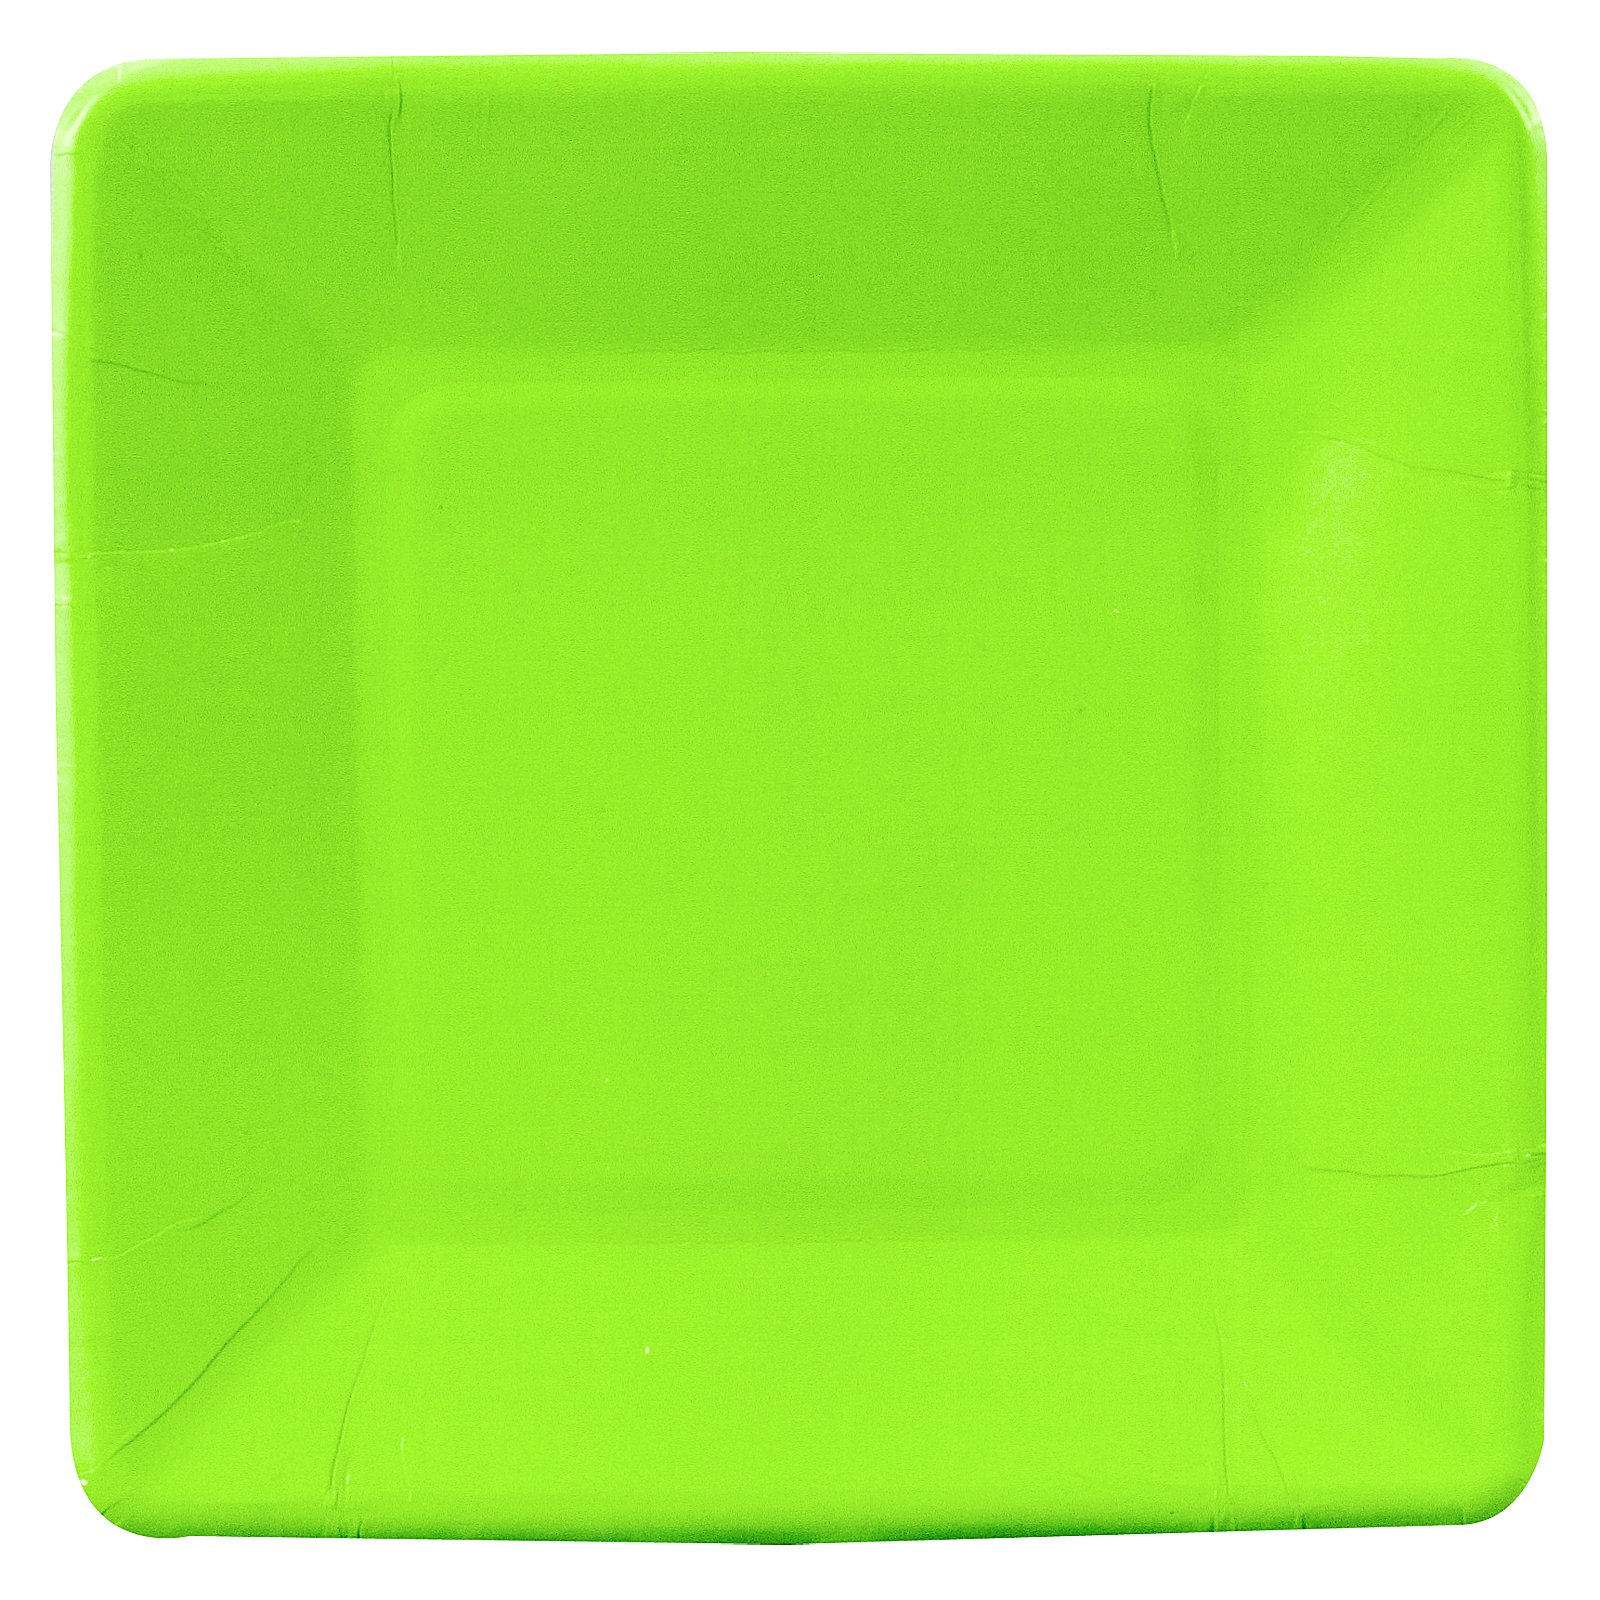 Fresh Lime (Lime Green) Square Dessert Plates (18 count)